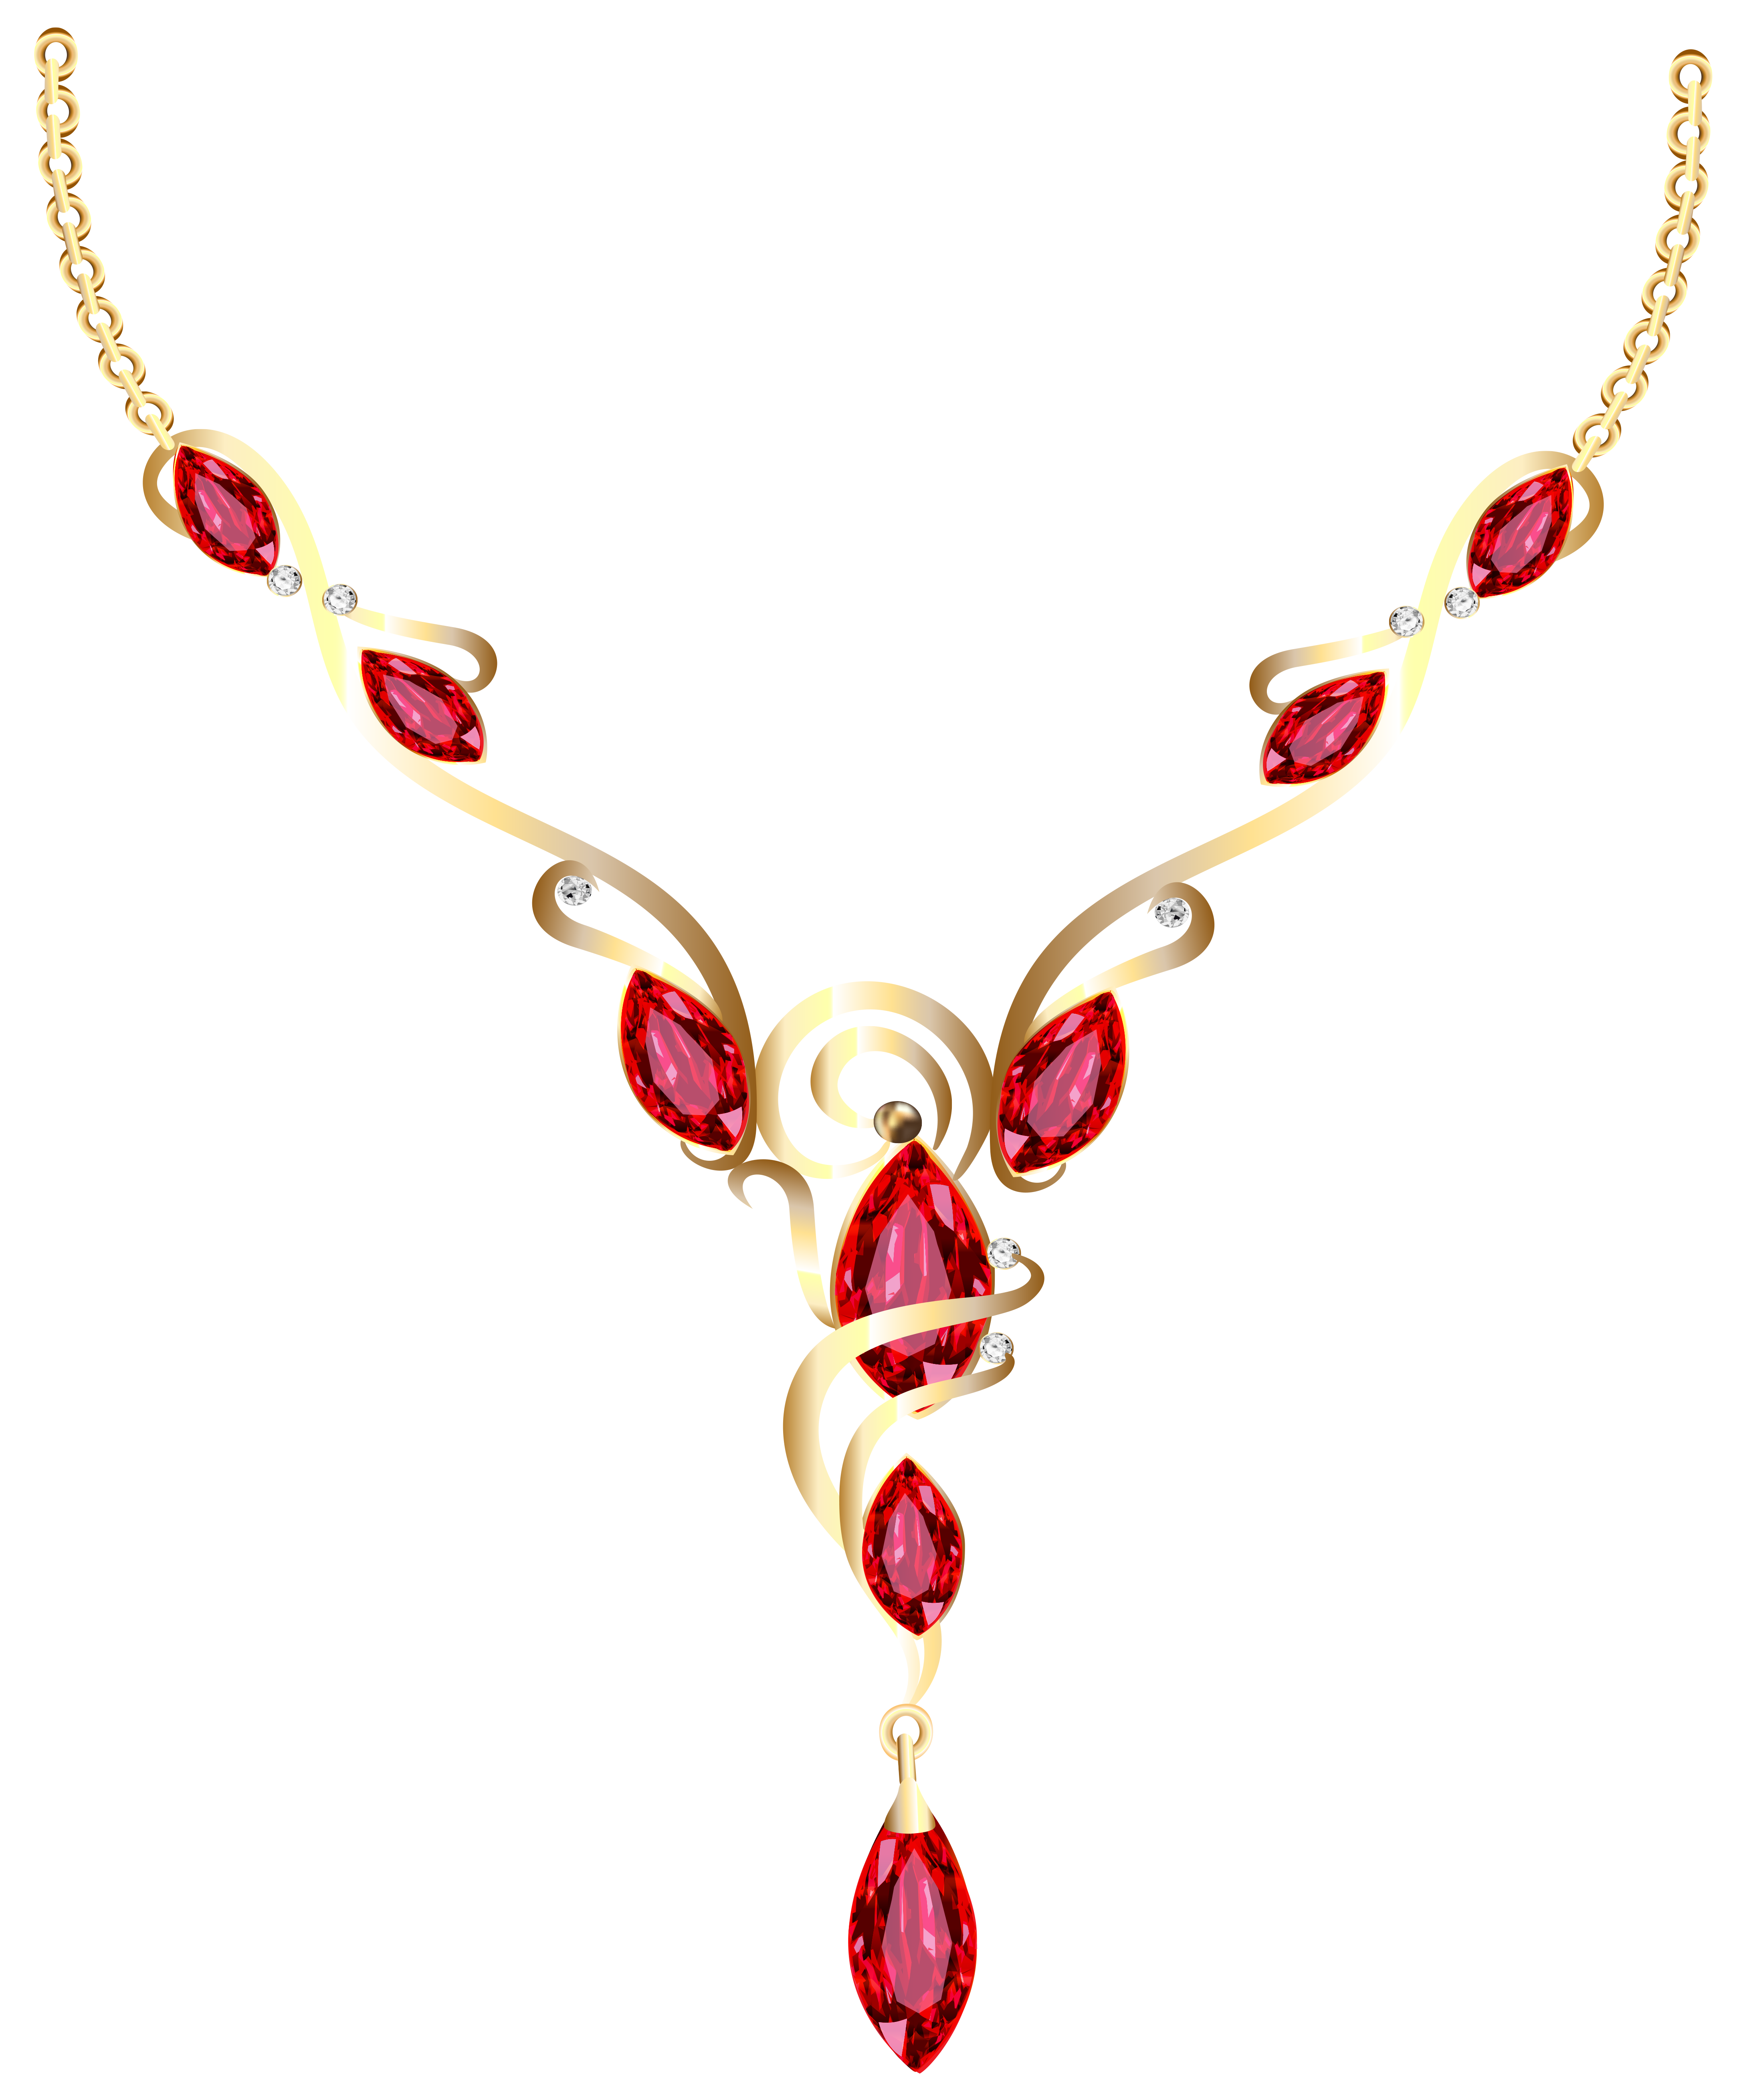 Diamond clipart diamond necklace Full PNG Yopriceville View Gallery